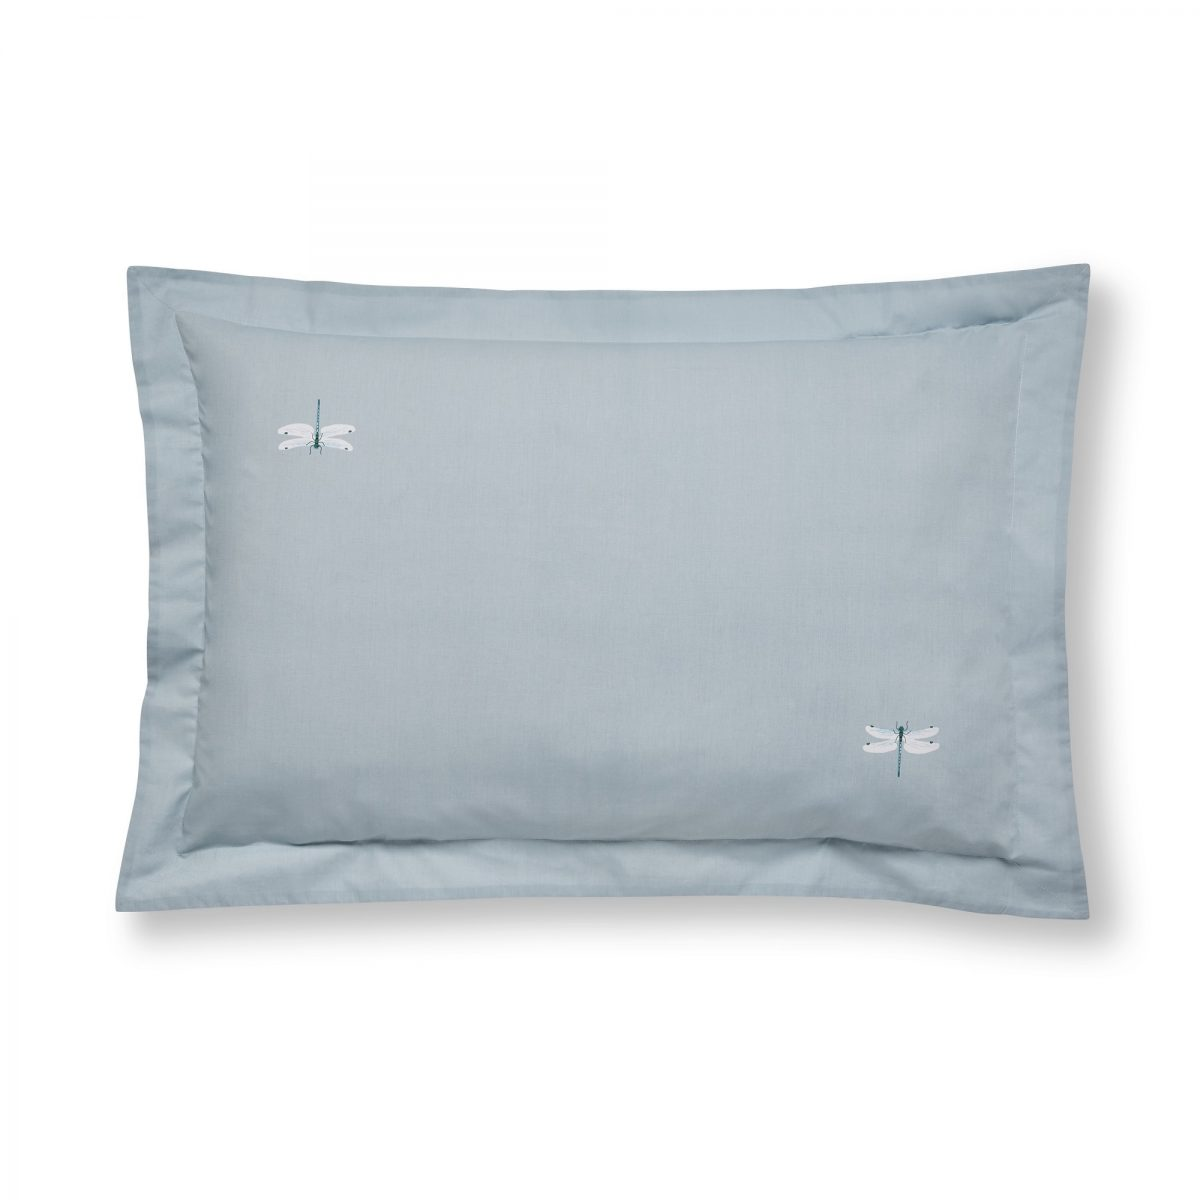 Dragonfly Oxford Pillowcase Cut Out email